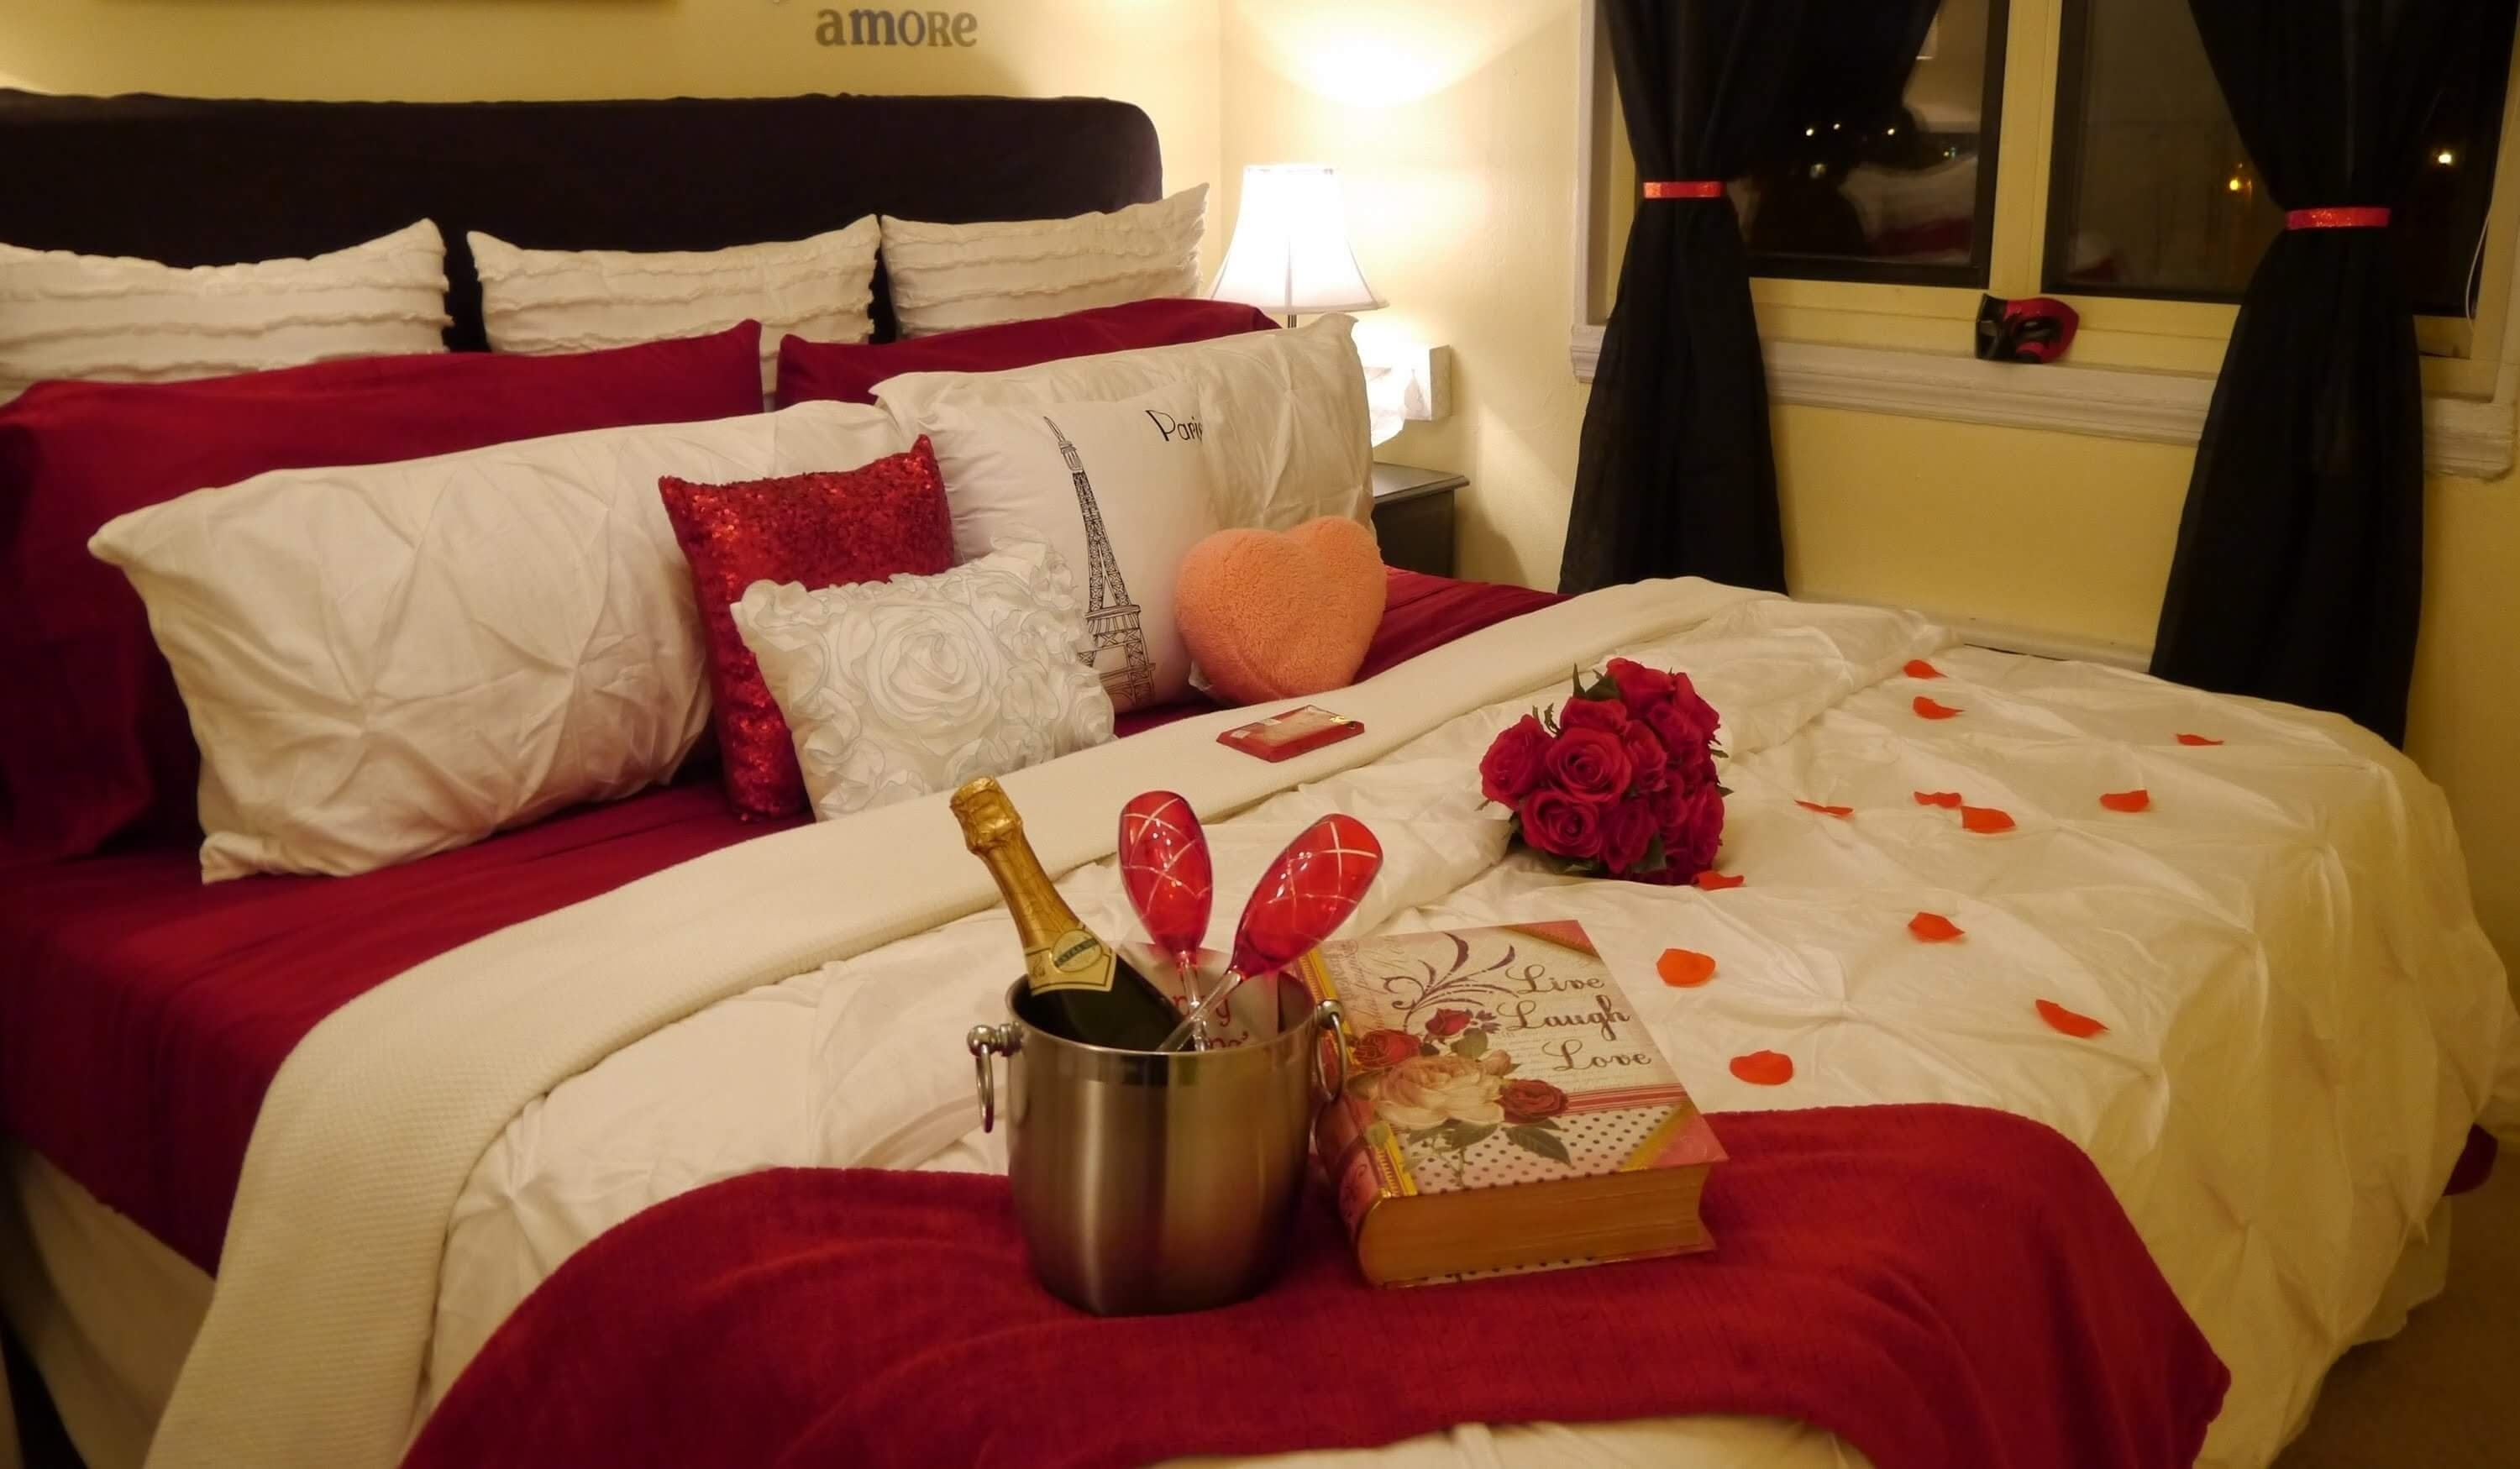 10 Unique Romantic Ideas For Valentines Day For Her romantic valentines day ideas him estorecart home living now 46672 2 2020